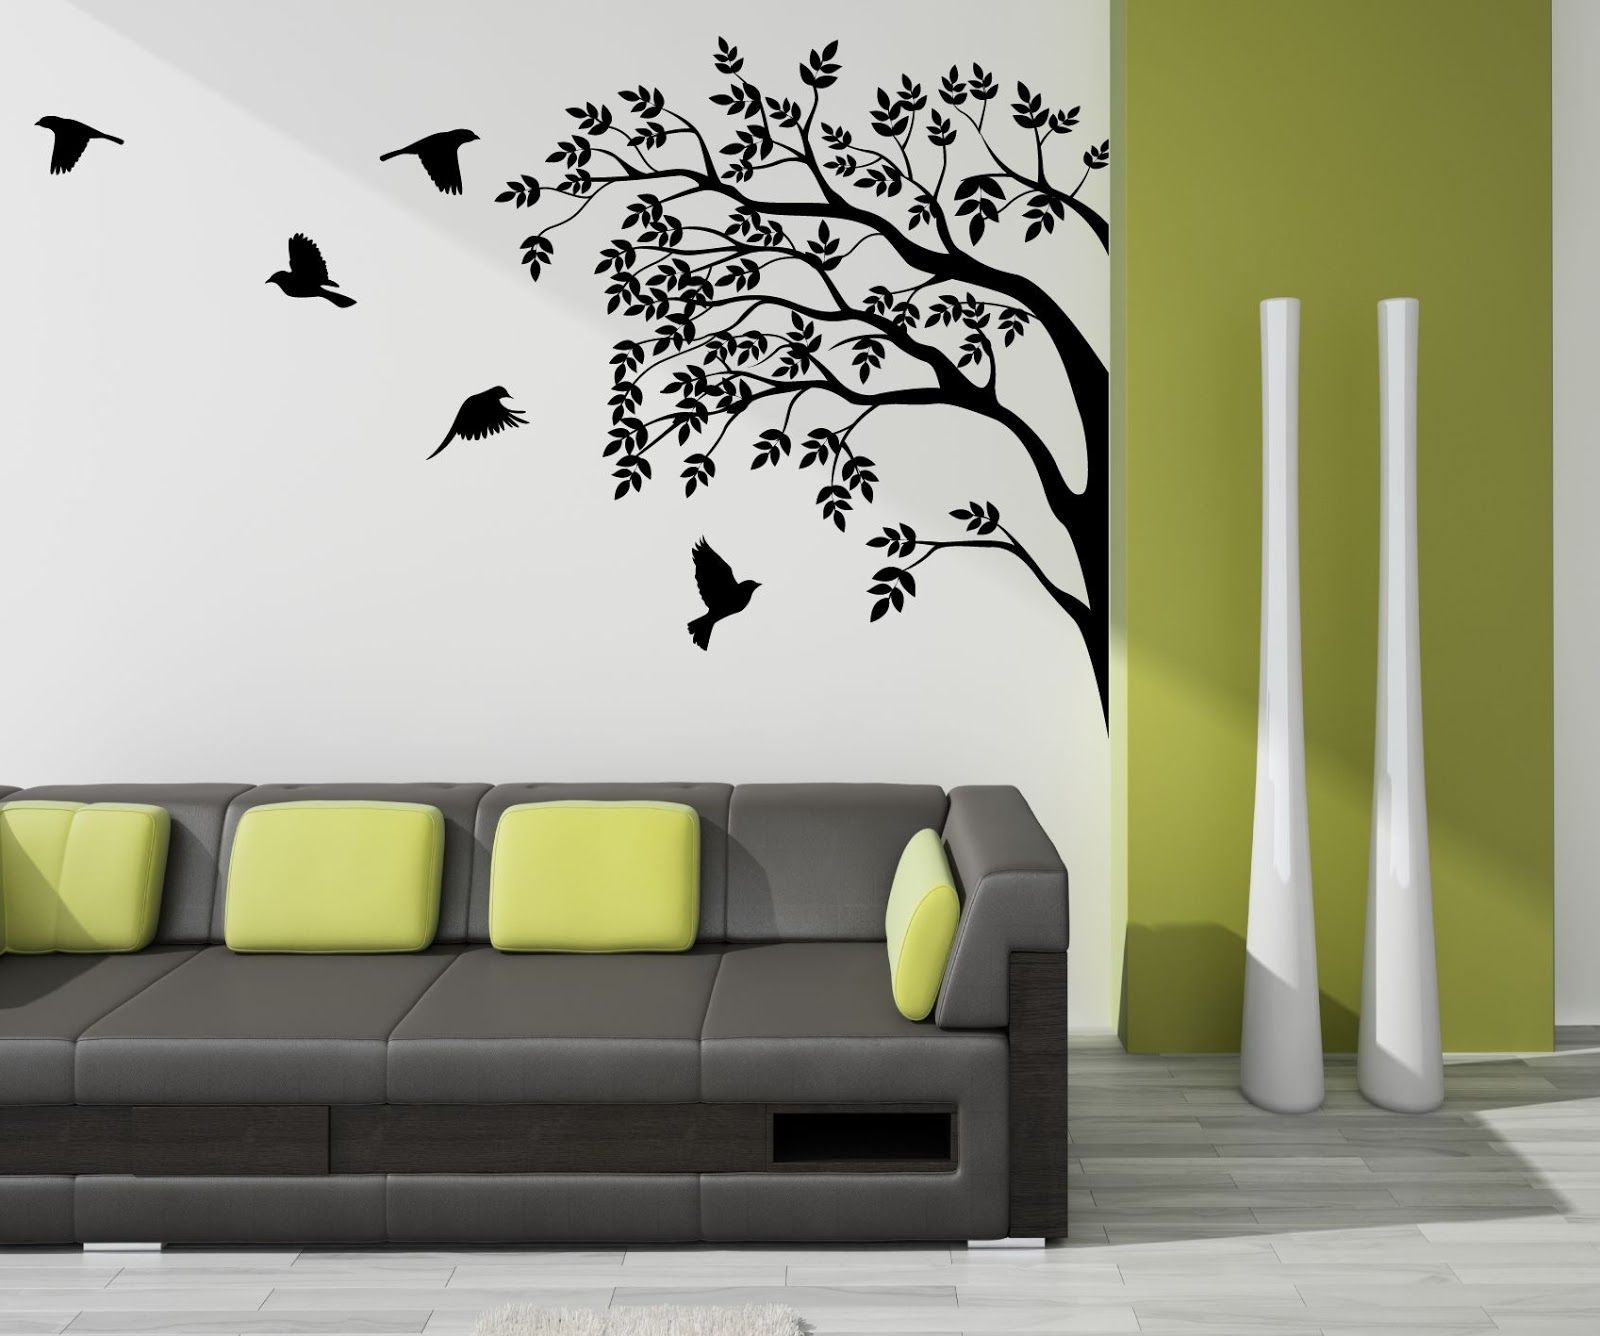 Wallpaper Stickers For Walls Decoration For Your Home Interior With Stunning Tree